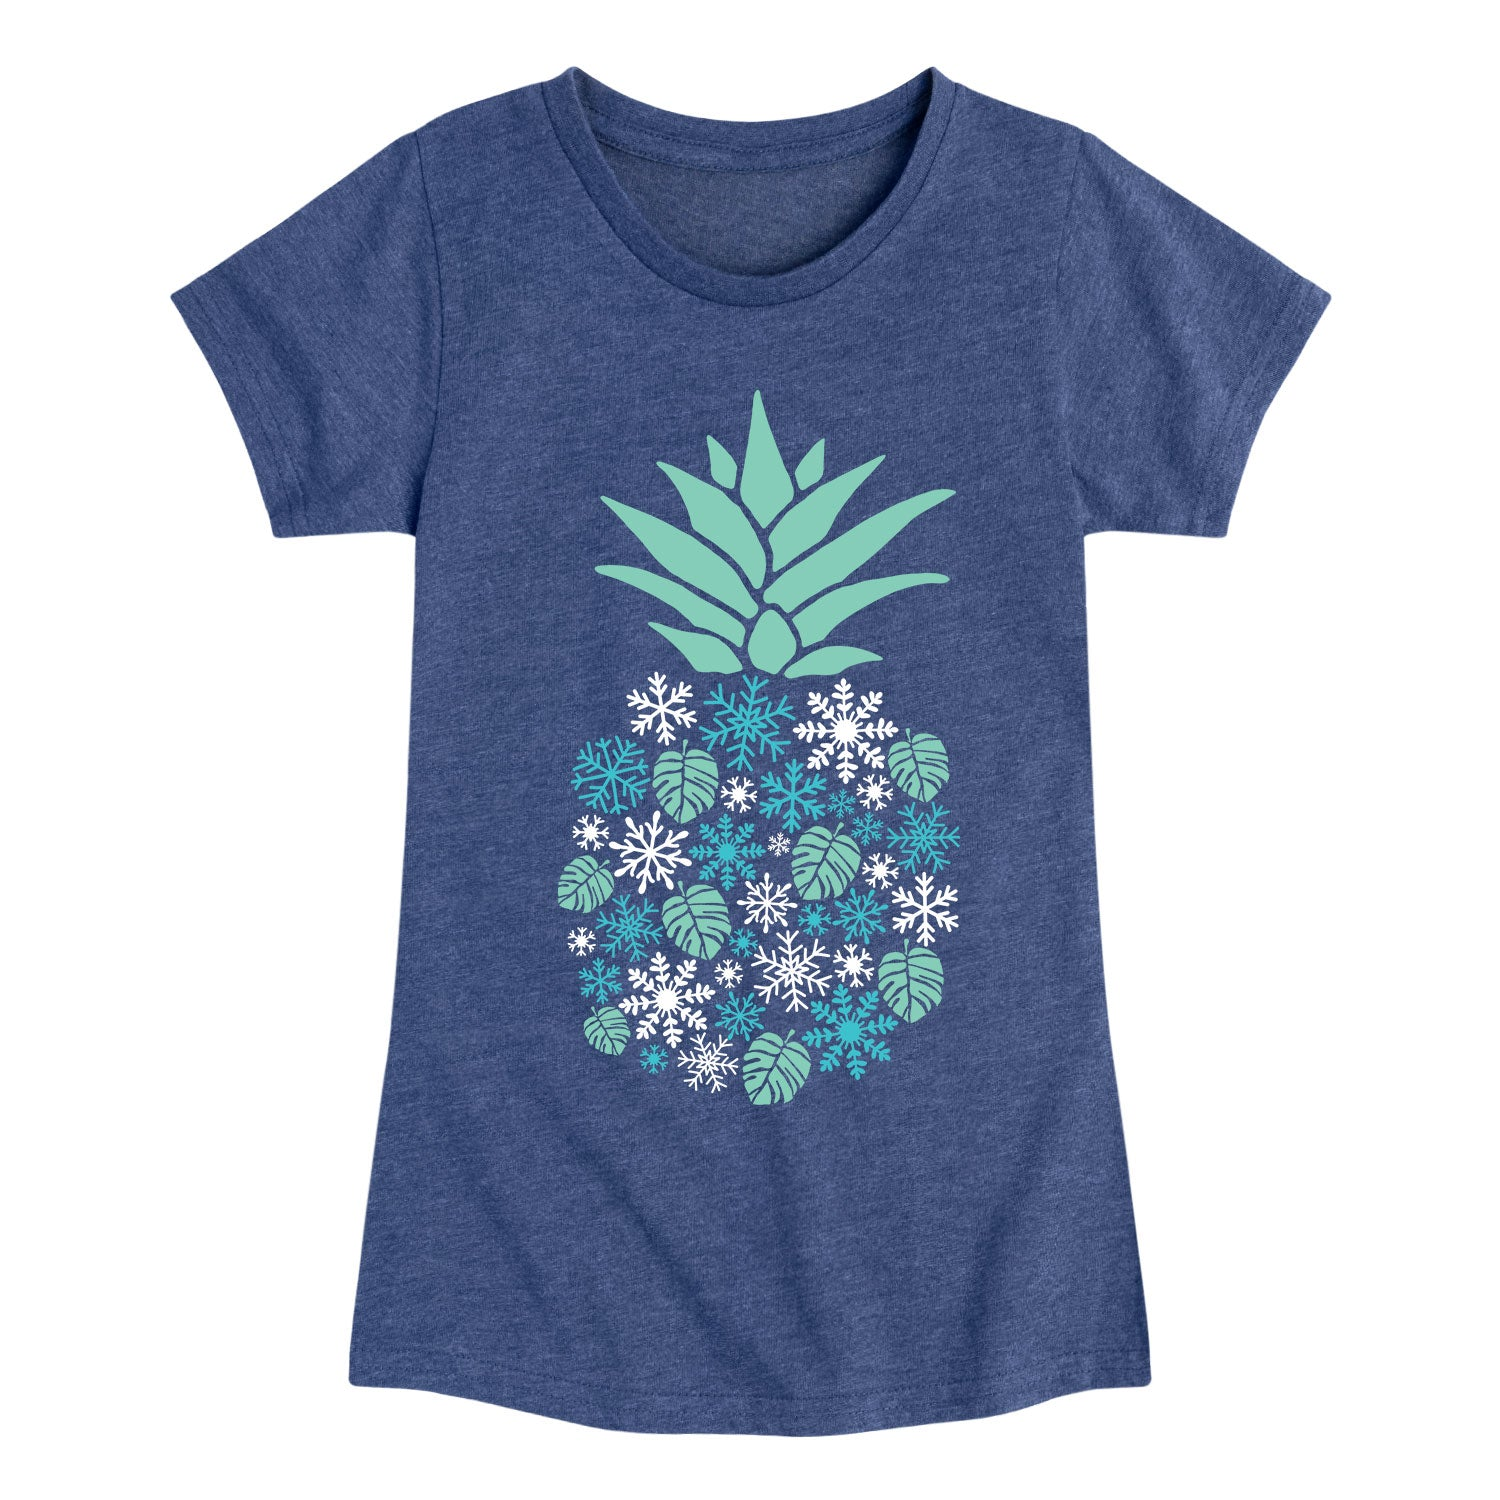 Winter Pineapple - Youth & Toddler Girls Short Sleeve T-Shirt